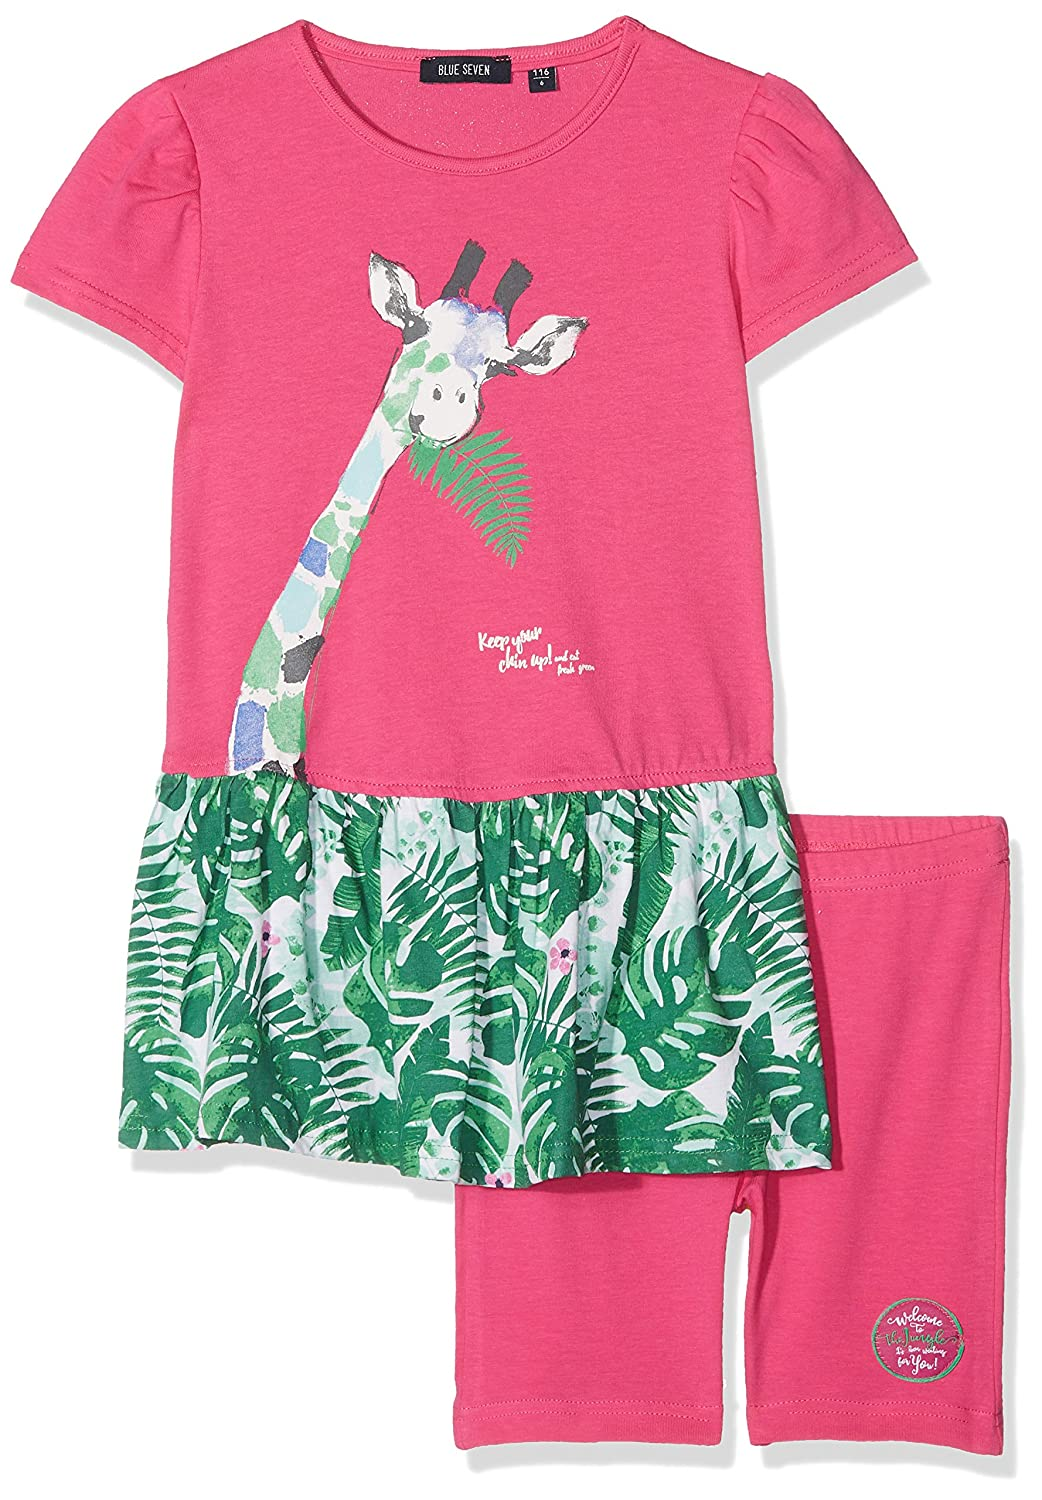 Blue Seven Girl's Tunikabiker Clothing Set 727015 X